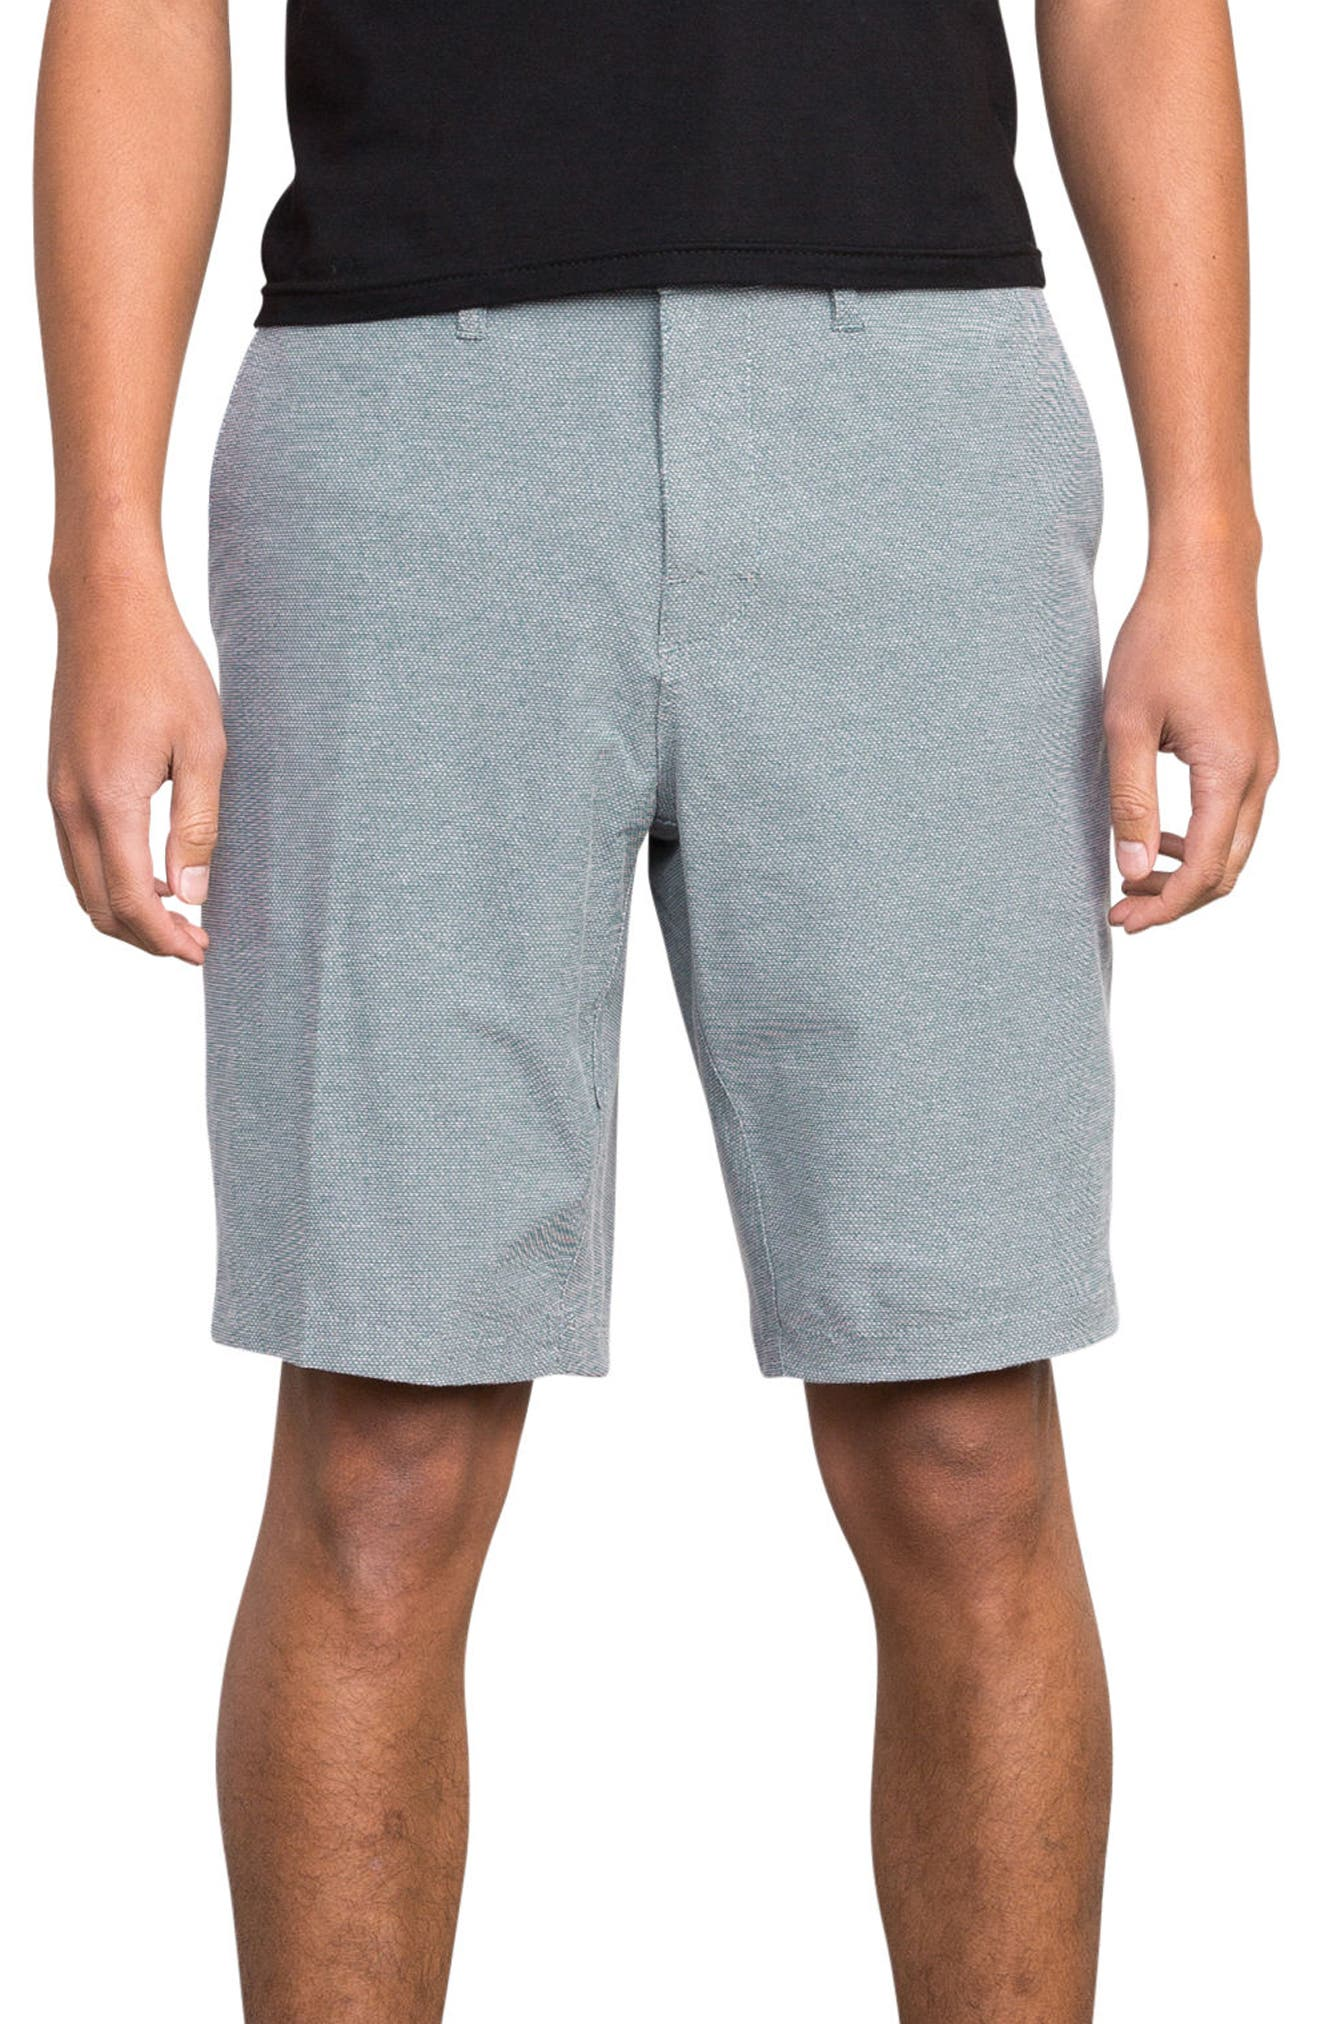 Holidaze Hybrid Shorts,                         Main,                         color, Slate